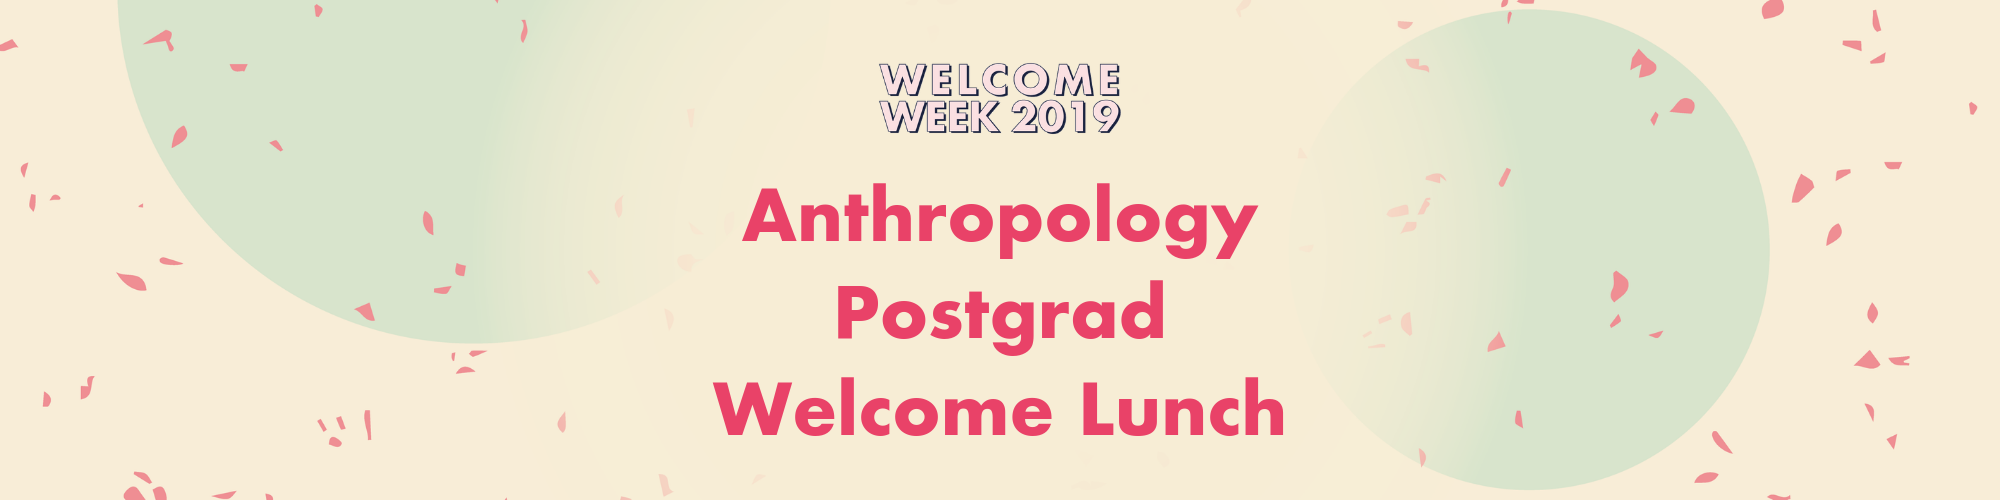 Anthropology Postgrad Welcome Lunch